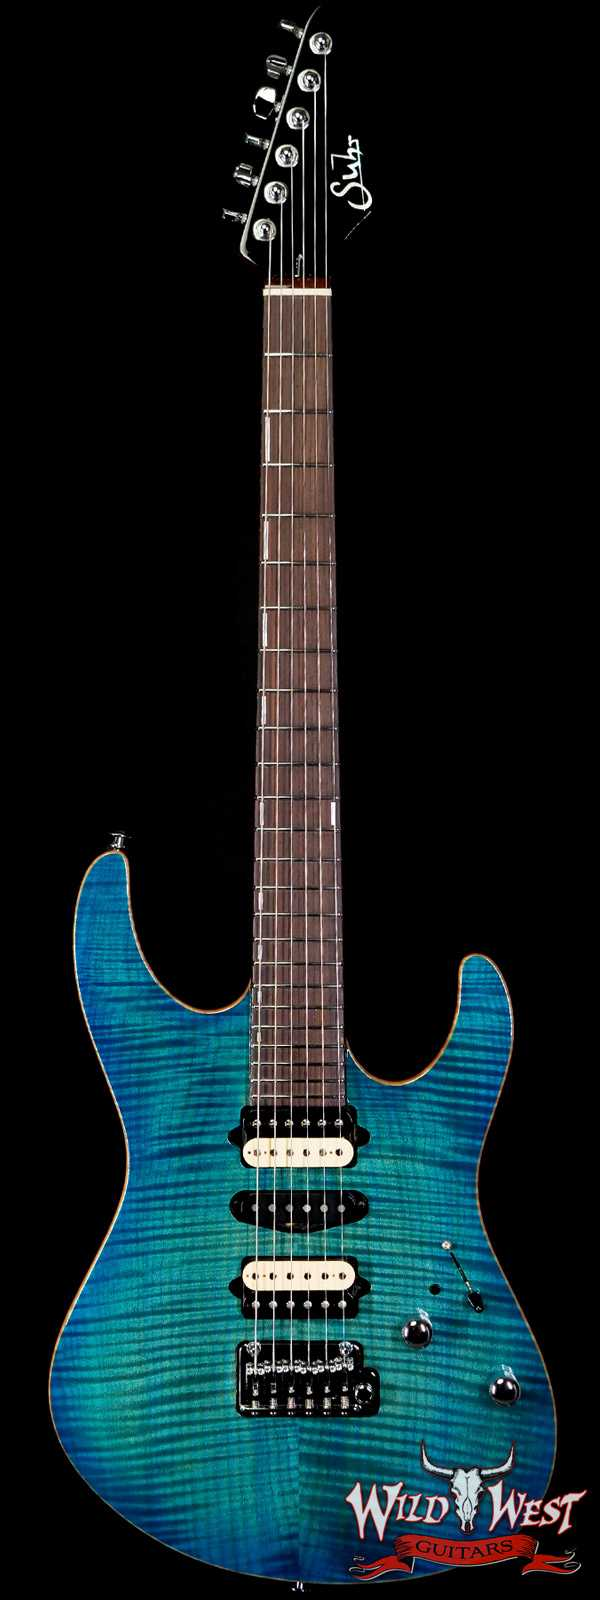 Suhr Custom Modern Set Neck HSH Flame Maple Top Indian Rosewood Fingerboard with Blower Switch Bahama Blue